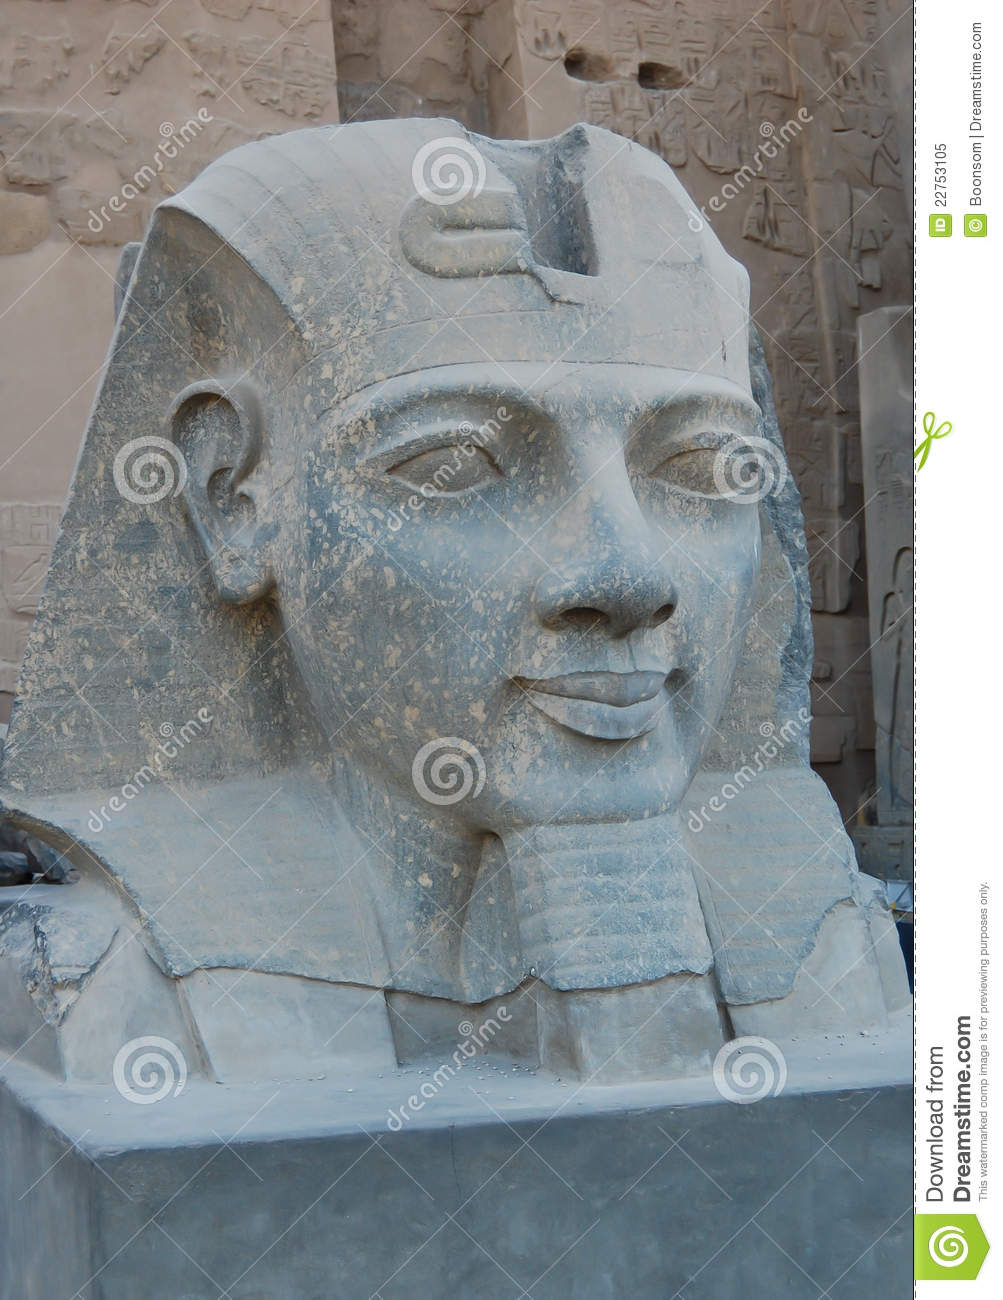 Head Statue Of Ramses II Royalty Free Stock Photo - Image: 22753105